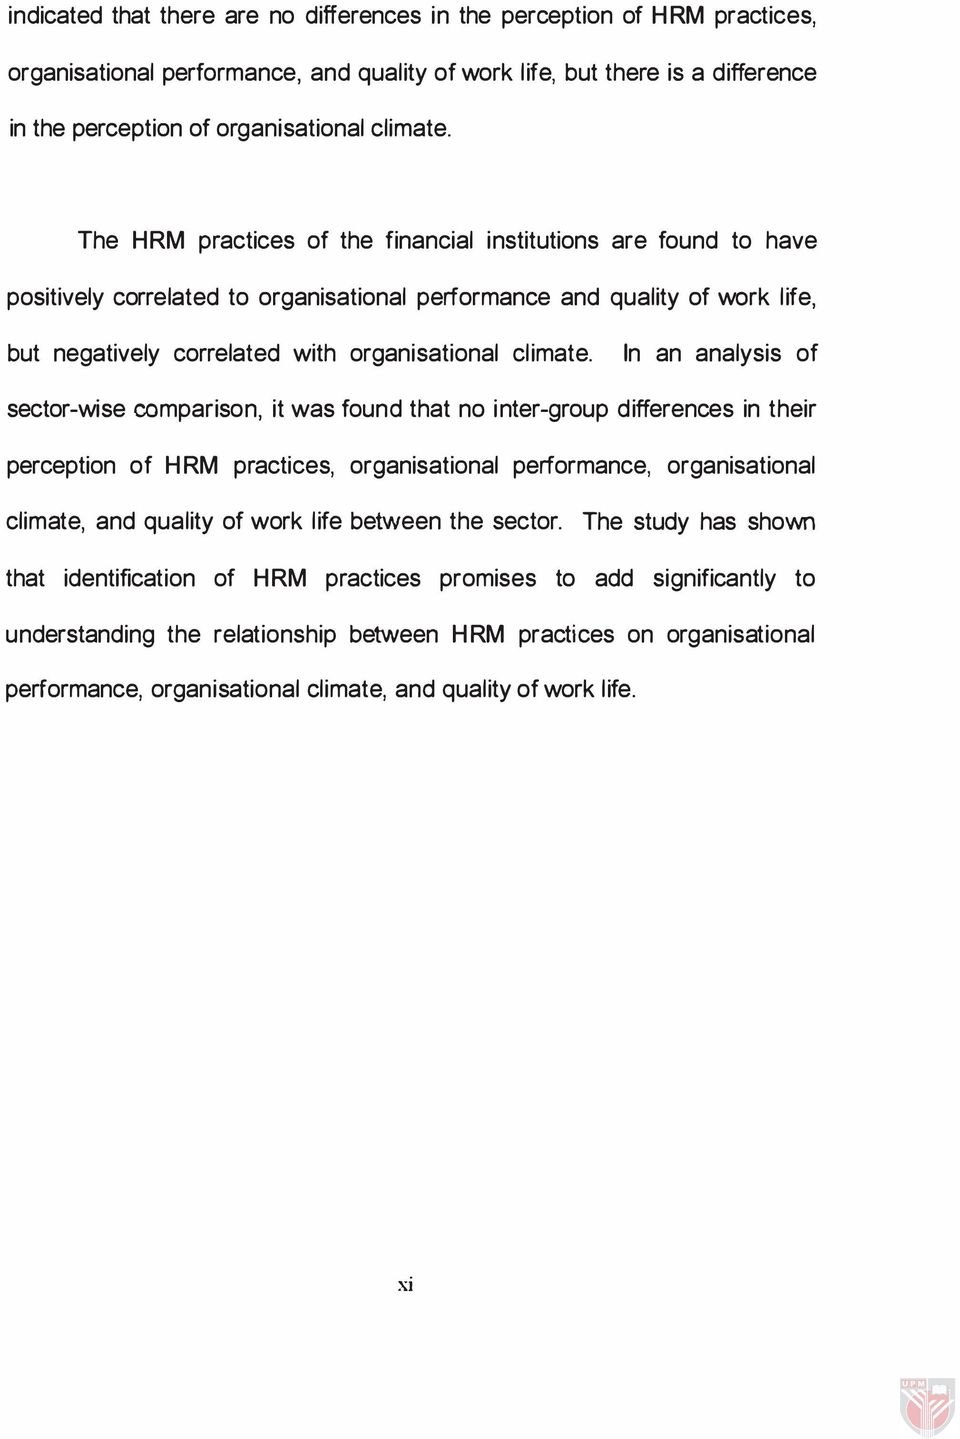 In an analysis of sector-wise comparison, it was found that no inter-group differences in their perception of HRM practices, organisational performance, organisational climate, and quality of work